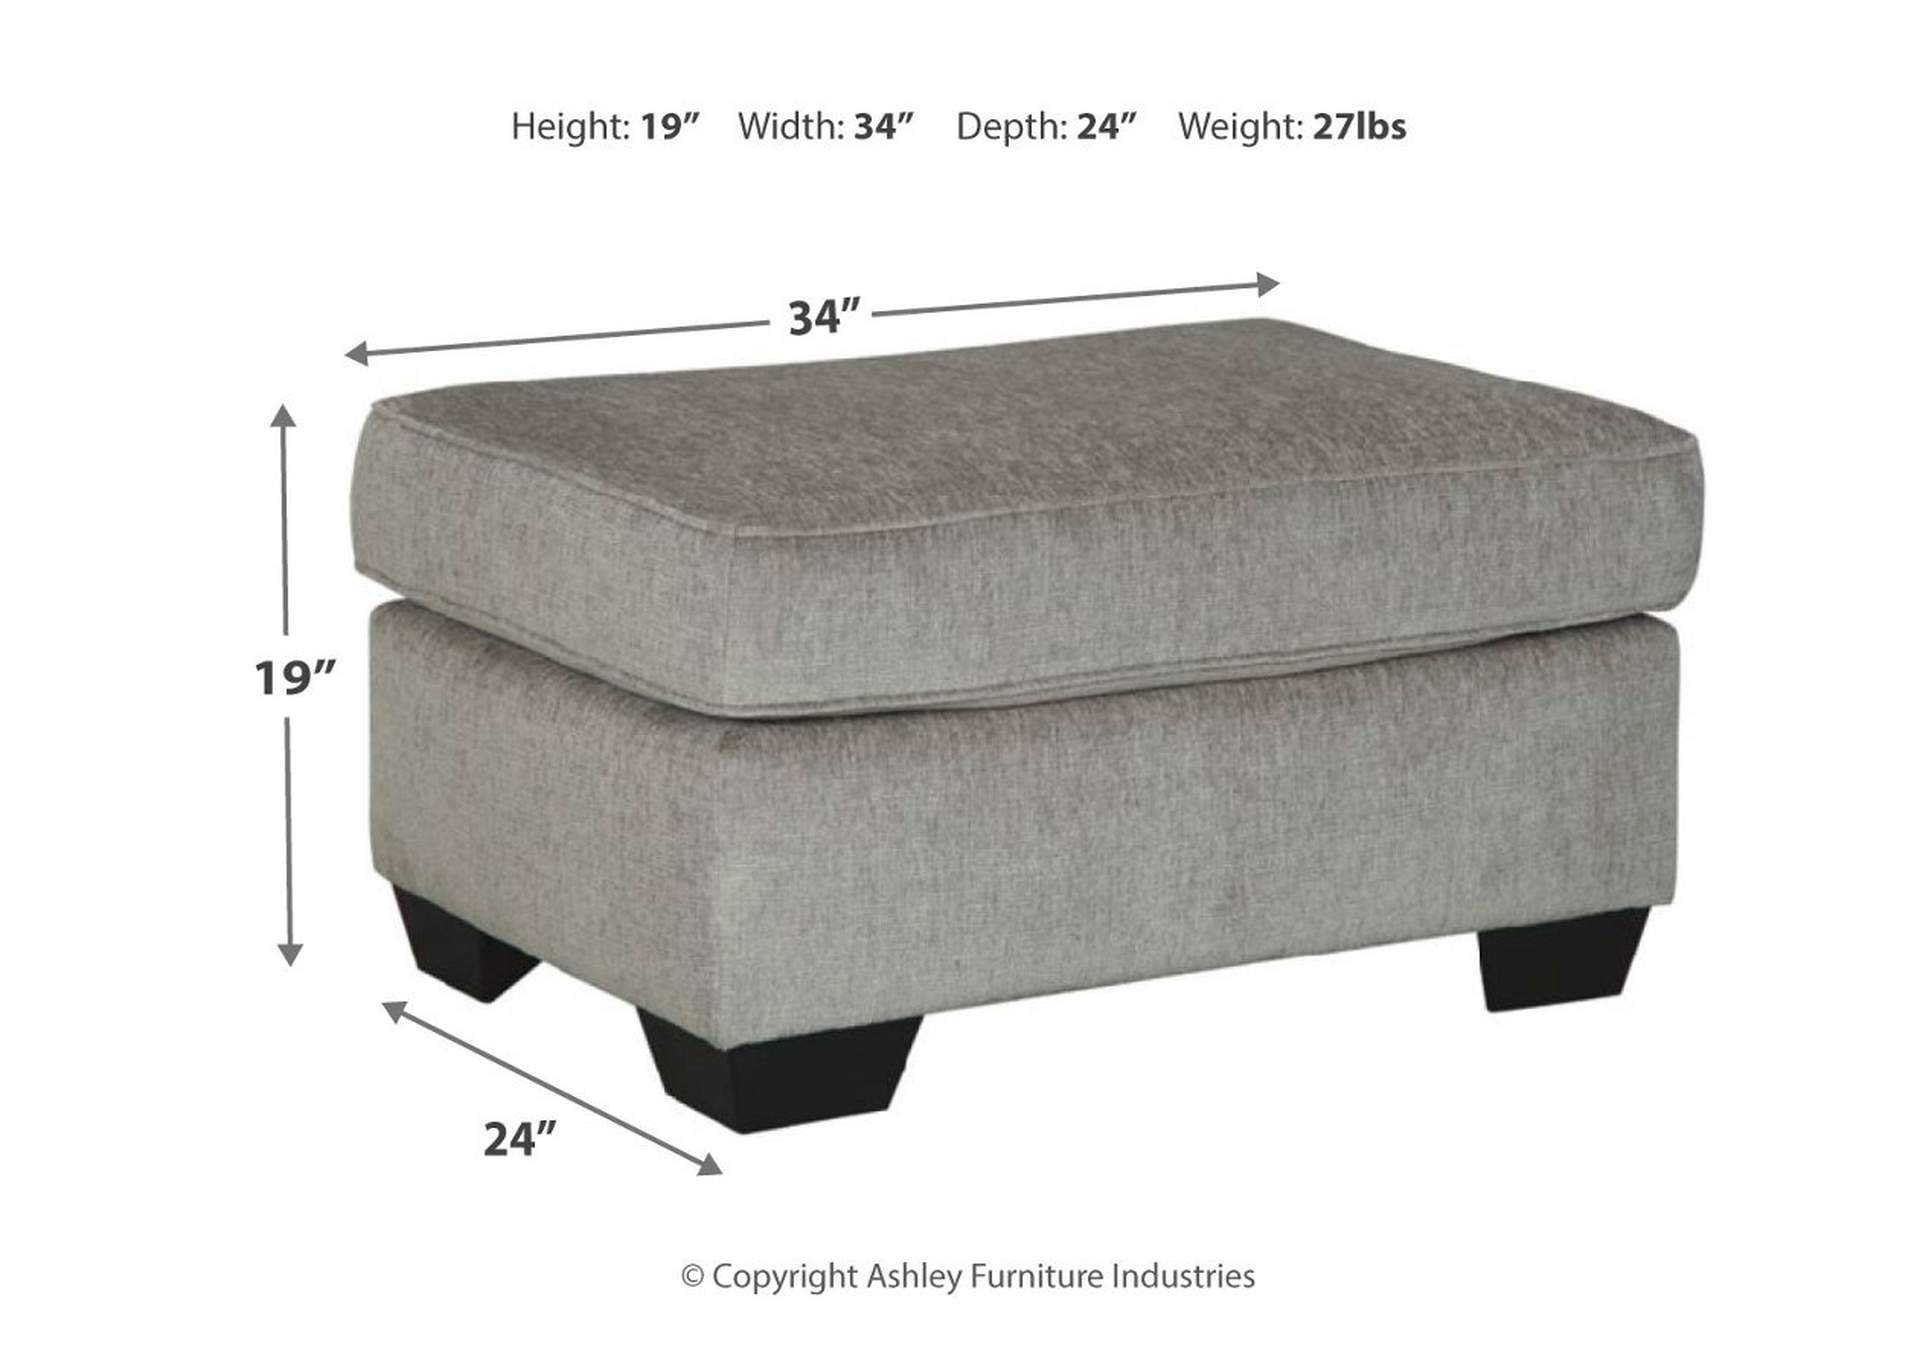 Altari Alloy Ottoman,Signature Design By Ashley